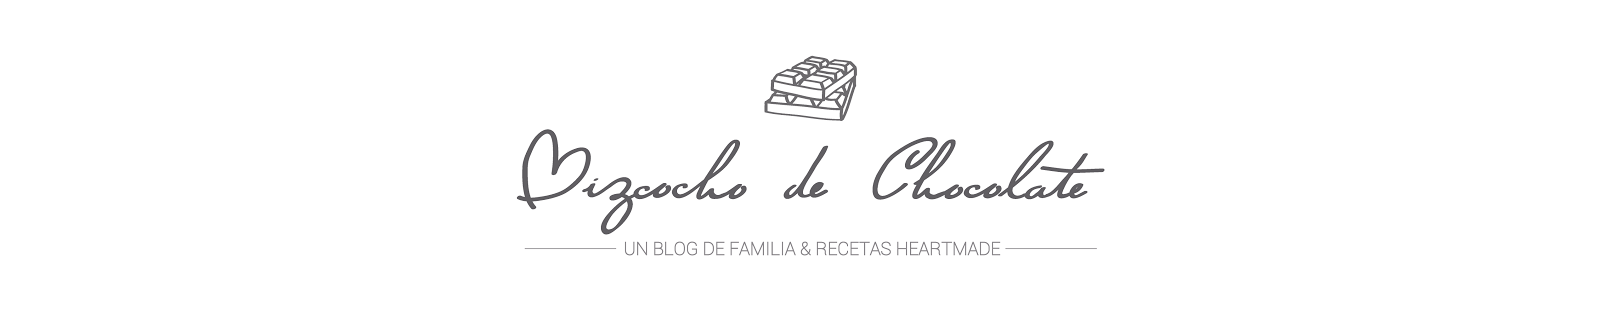 Bizcocho de Chocolate